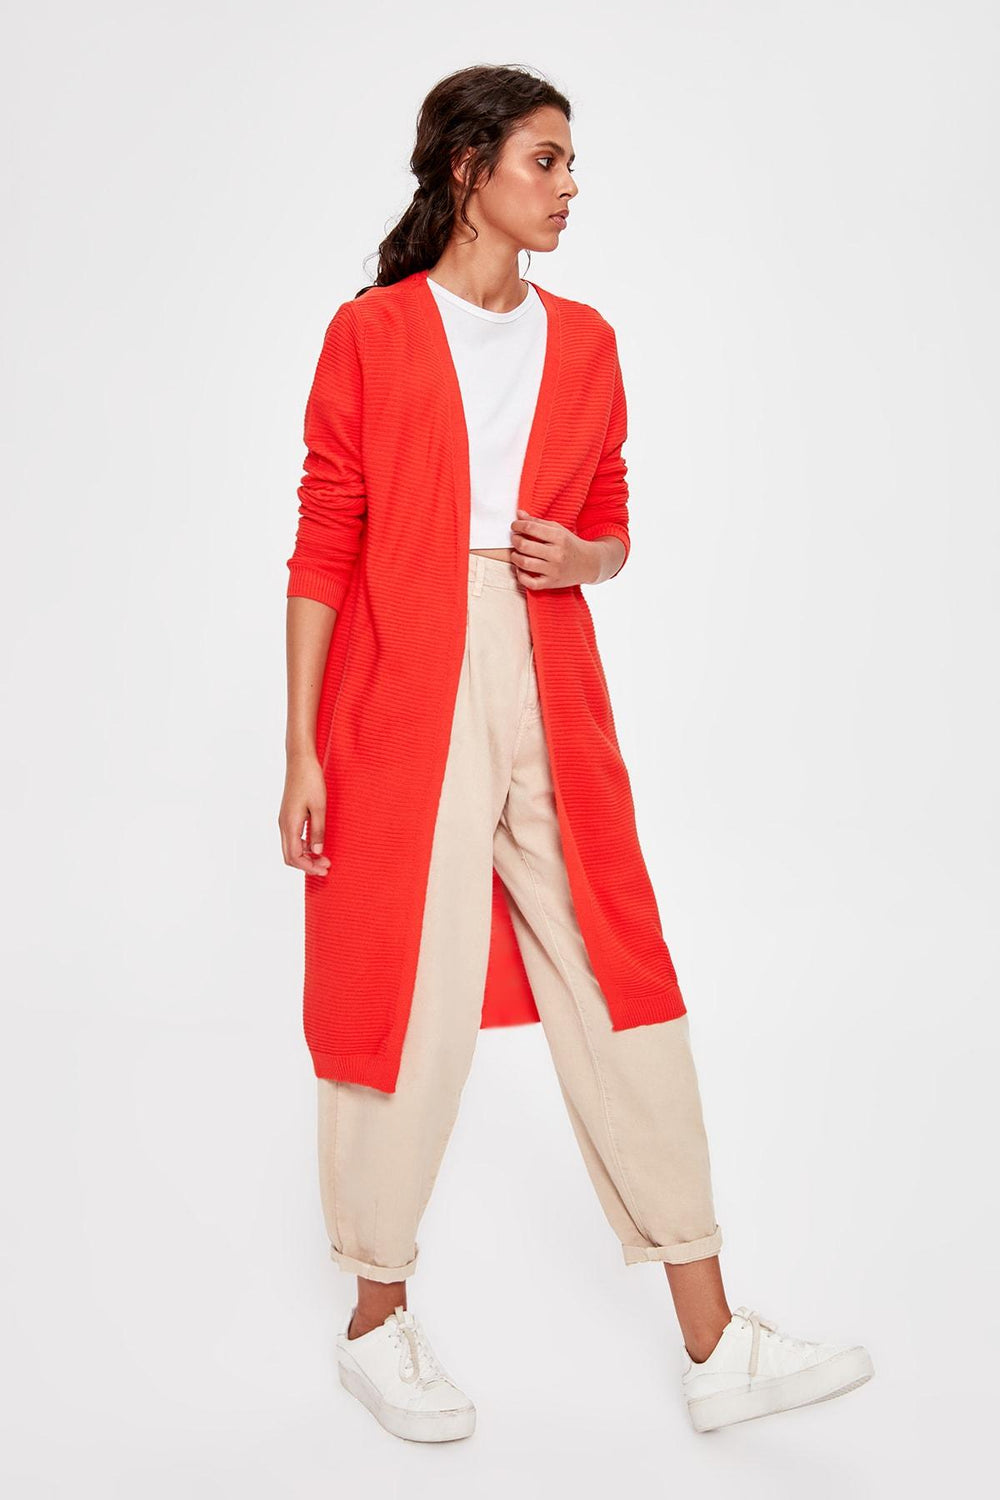 Coral Sweater Cardigan - Top Maxy